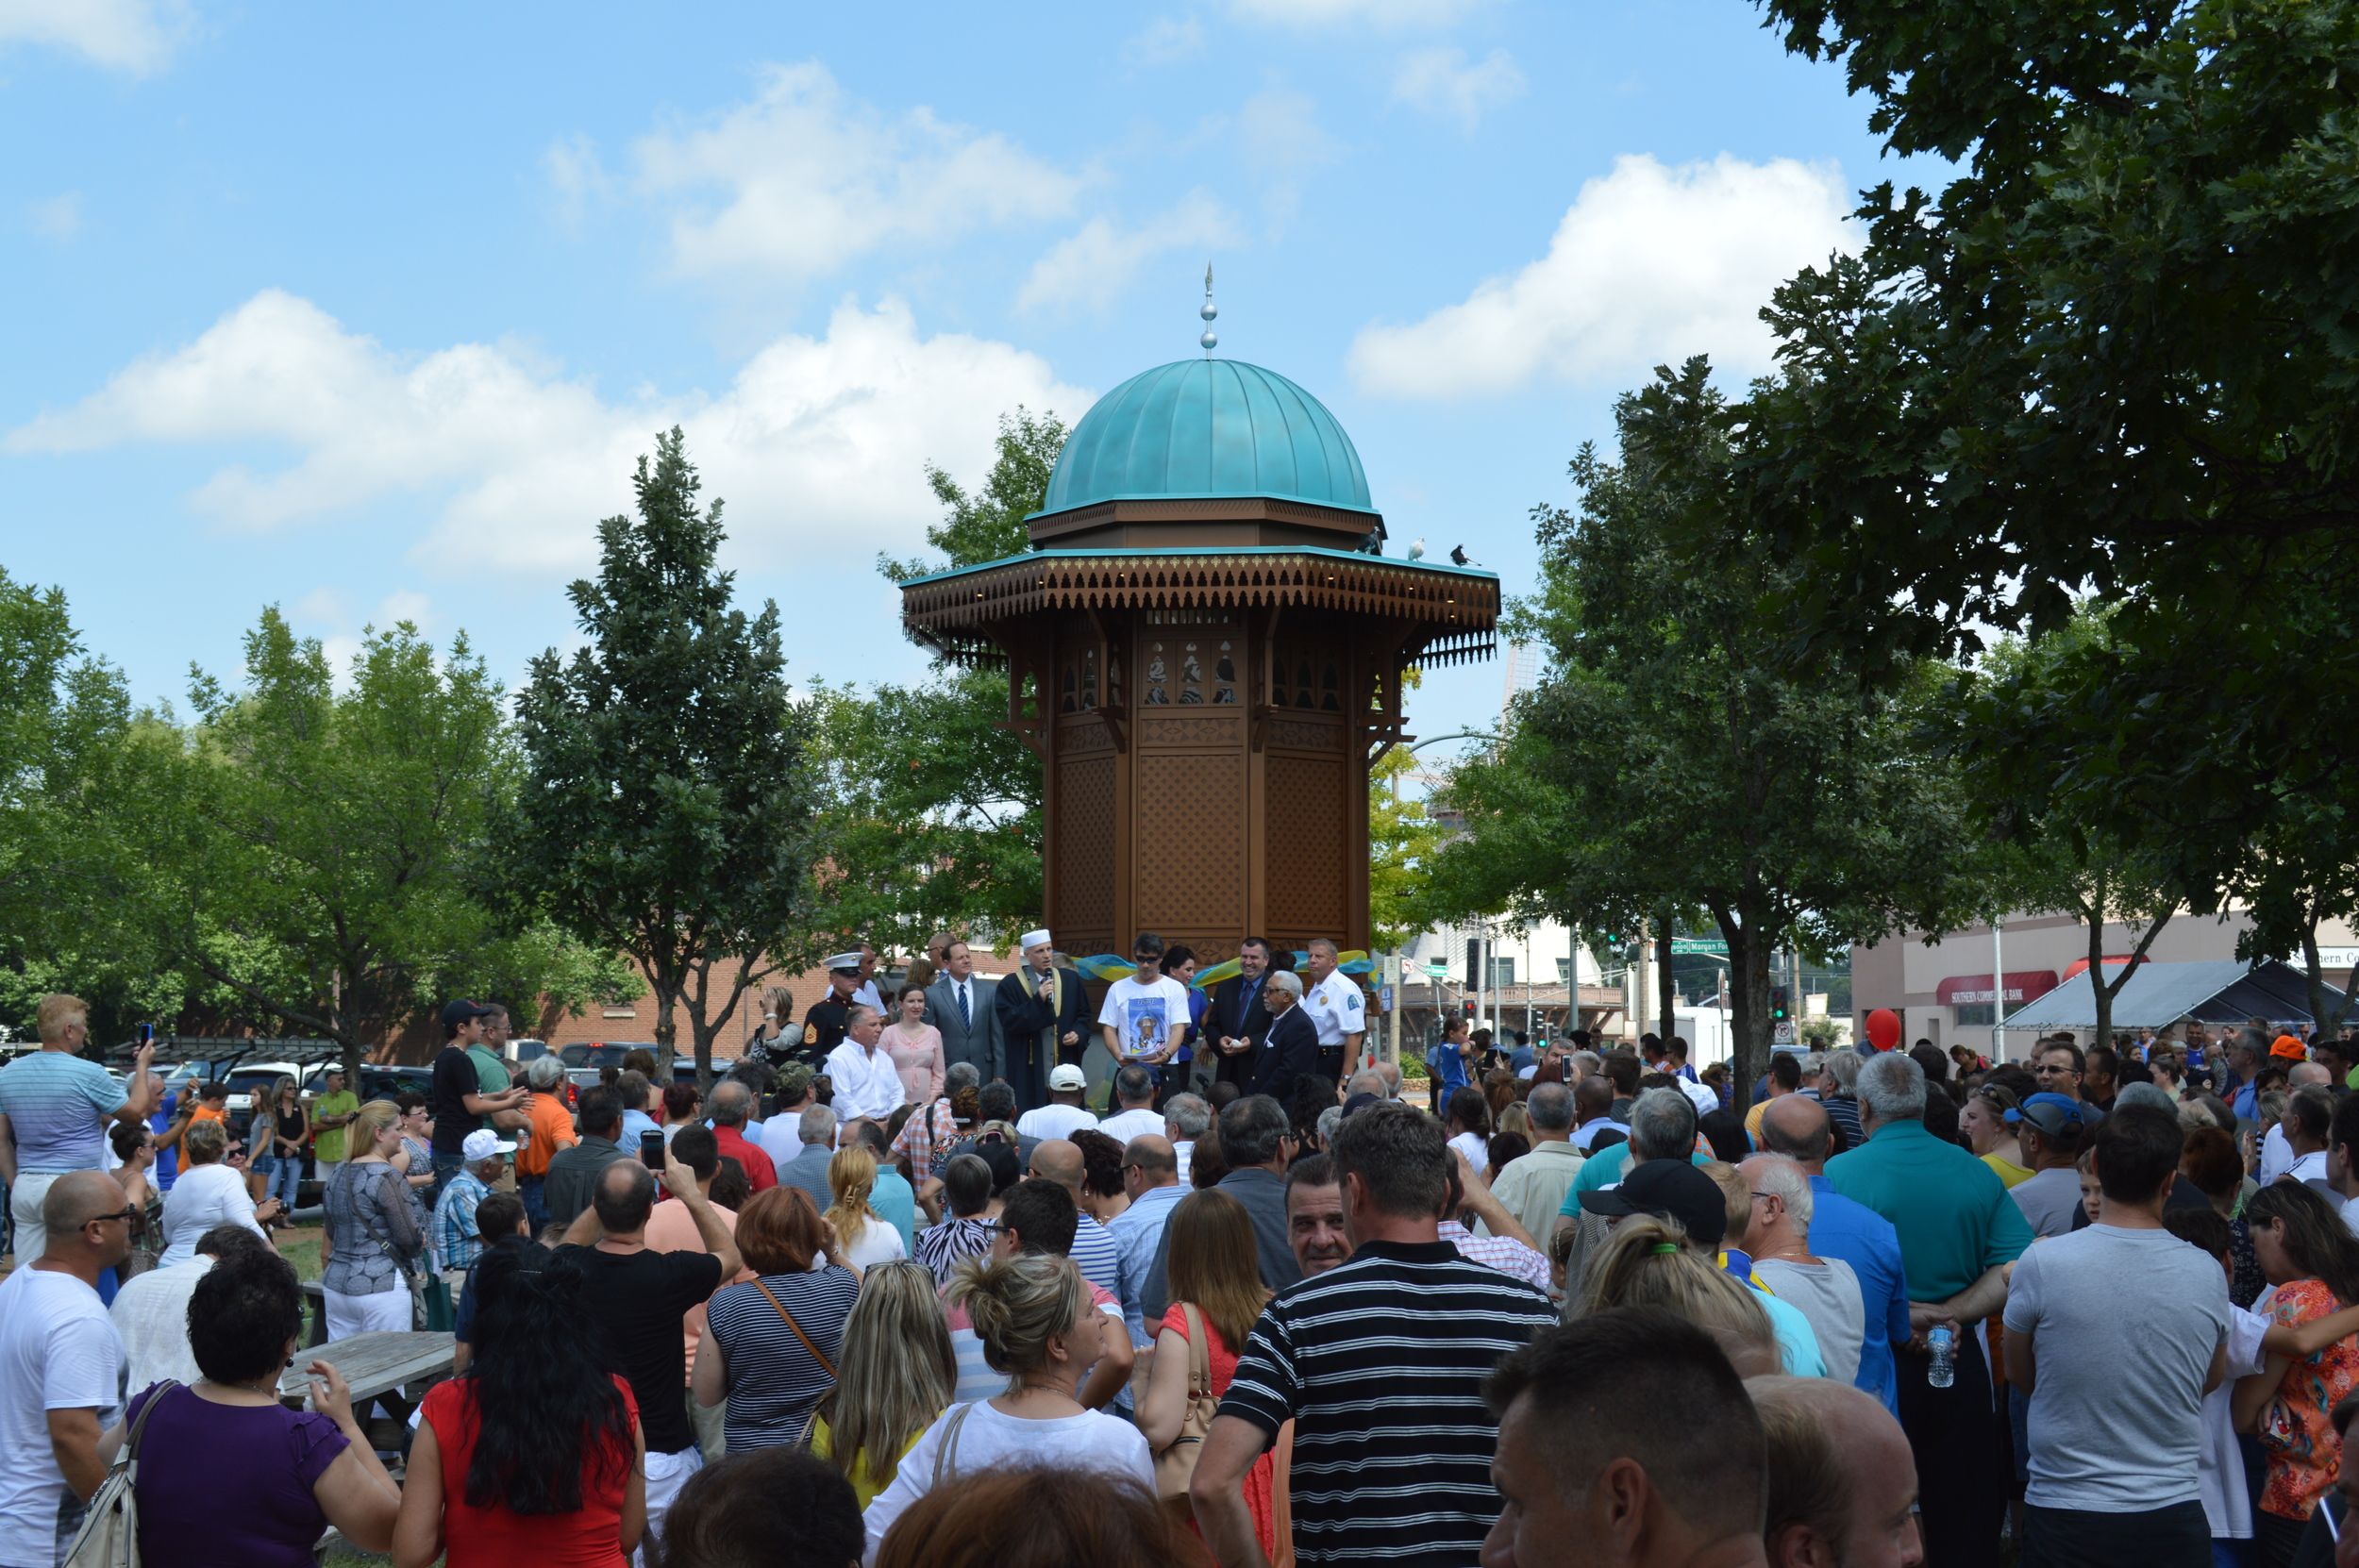 Dedication of Sebilj (public fountain) for 250th birthday of the City of St. Louis and Bosnian Festival in 2014. From the St. Louis Bosnian website.